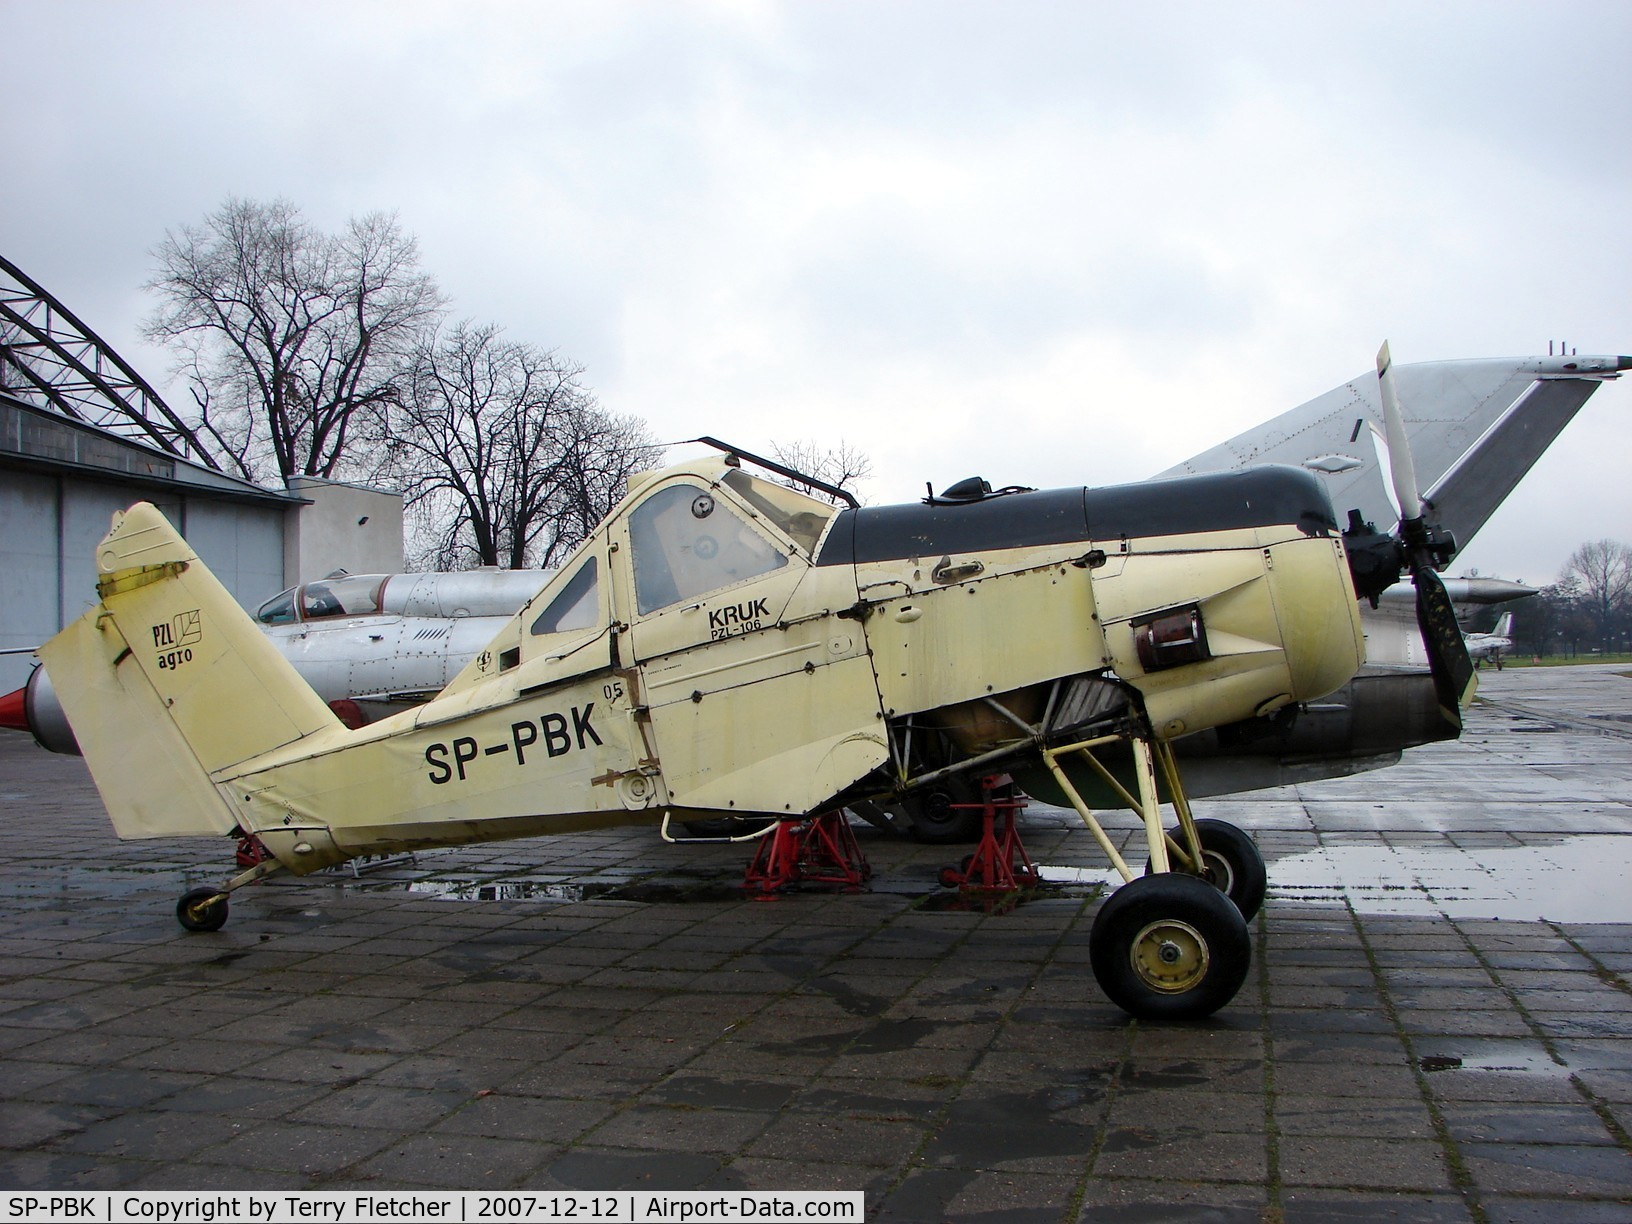 SP-PBK, PZL-Okecie PZL-106 Kruk C/N 05005, Awaiting re-assembly at the Poland Aviation Museum in Krakow